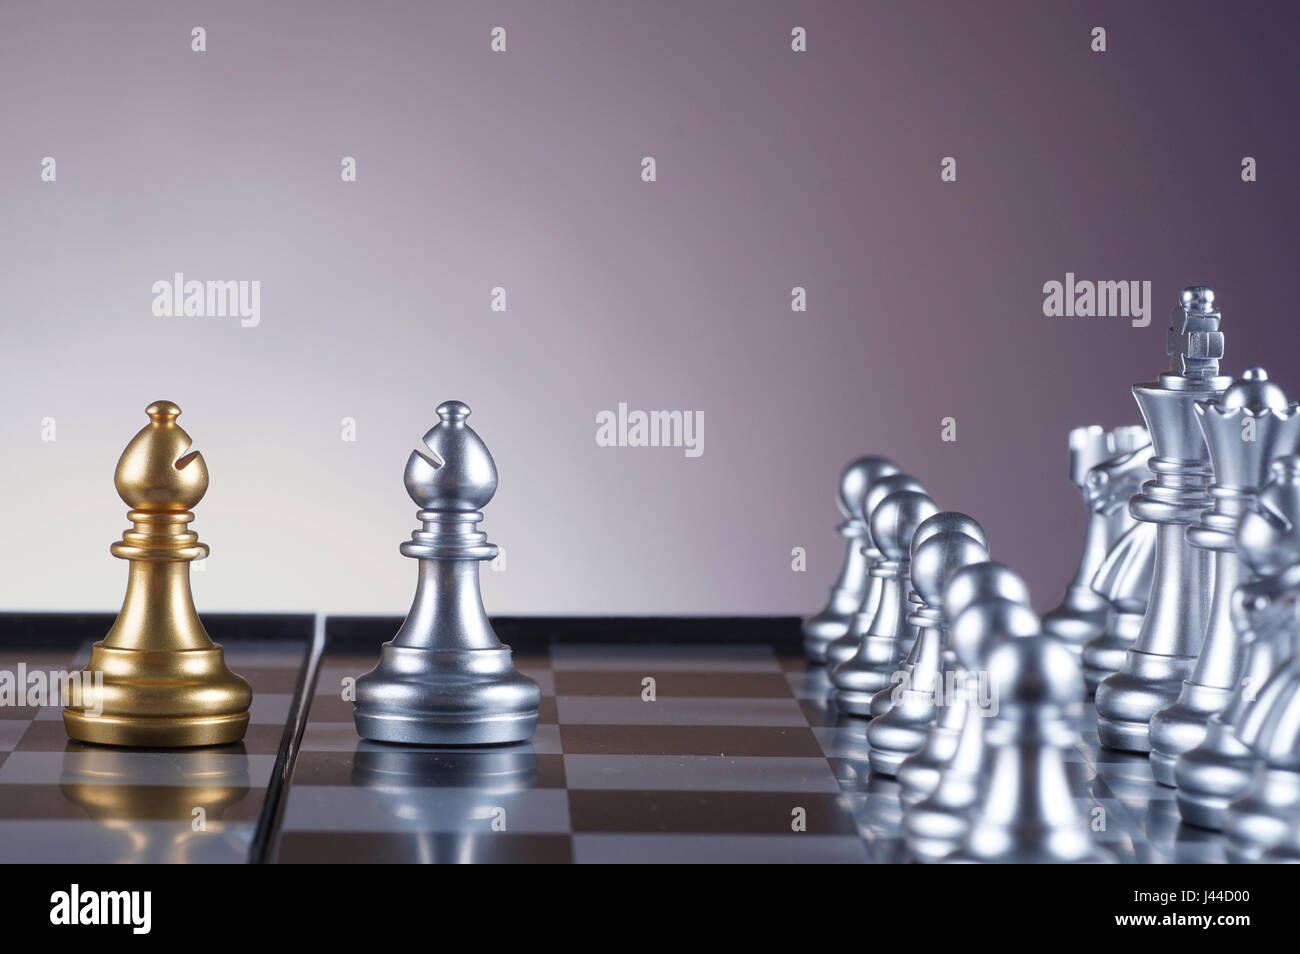 Golden bishop facing silver bishop chess on gradient background - leadership, team, successful and business concept - Stock Image